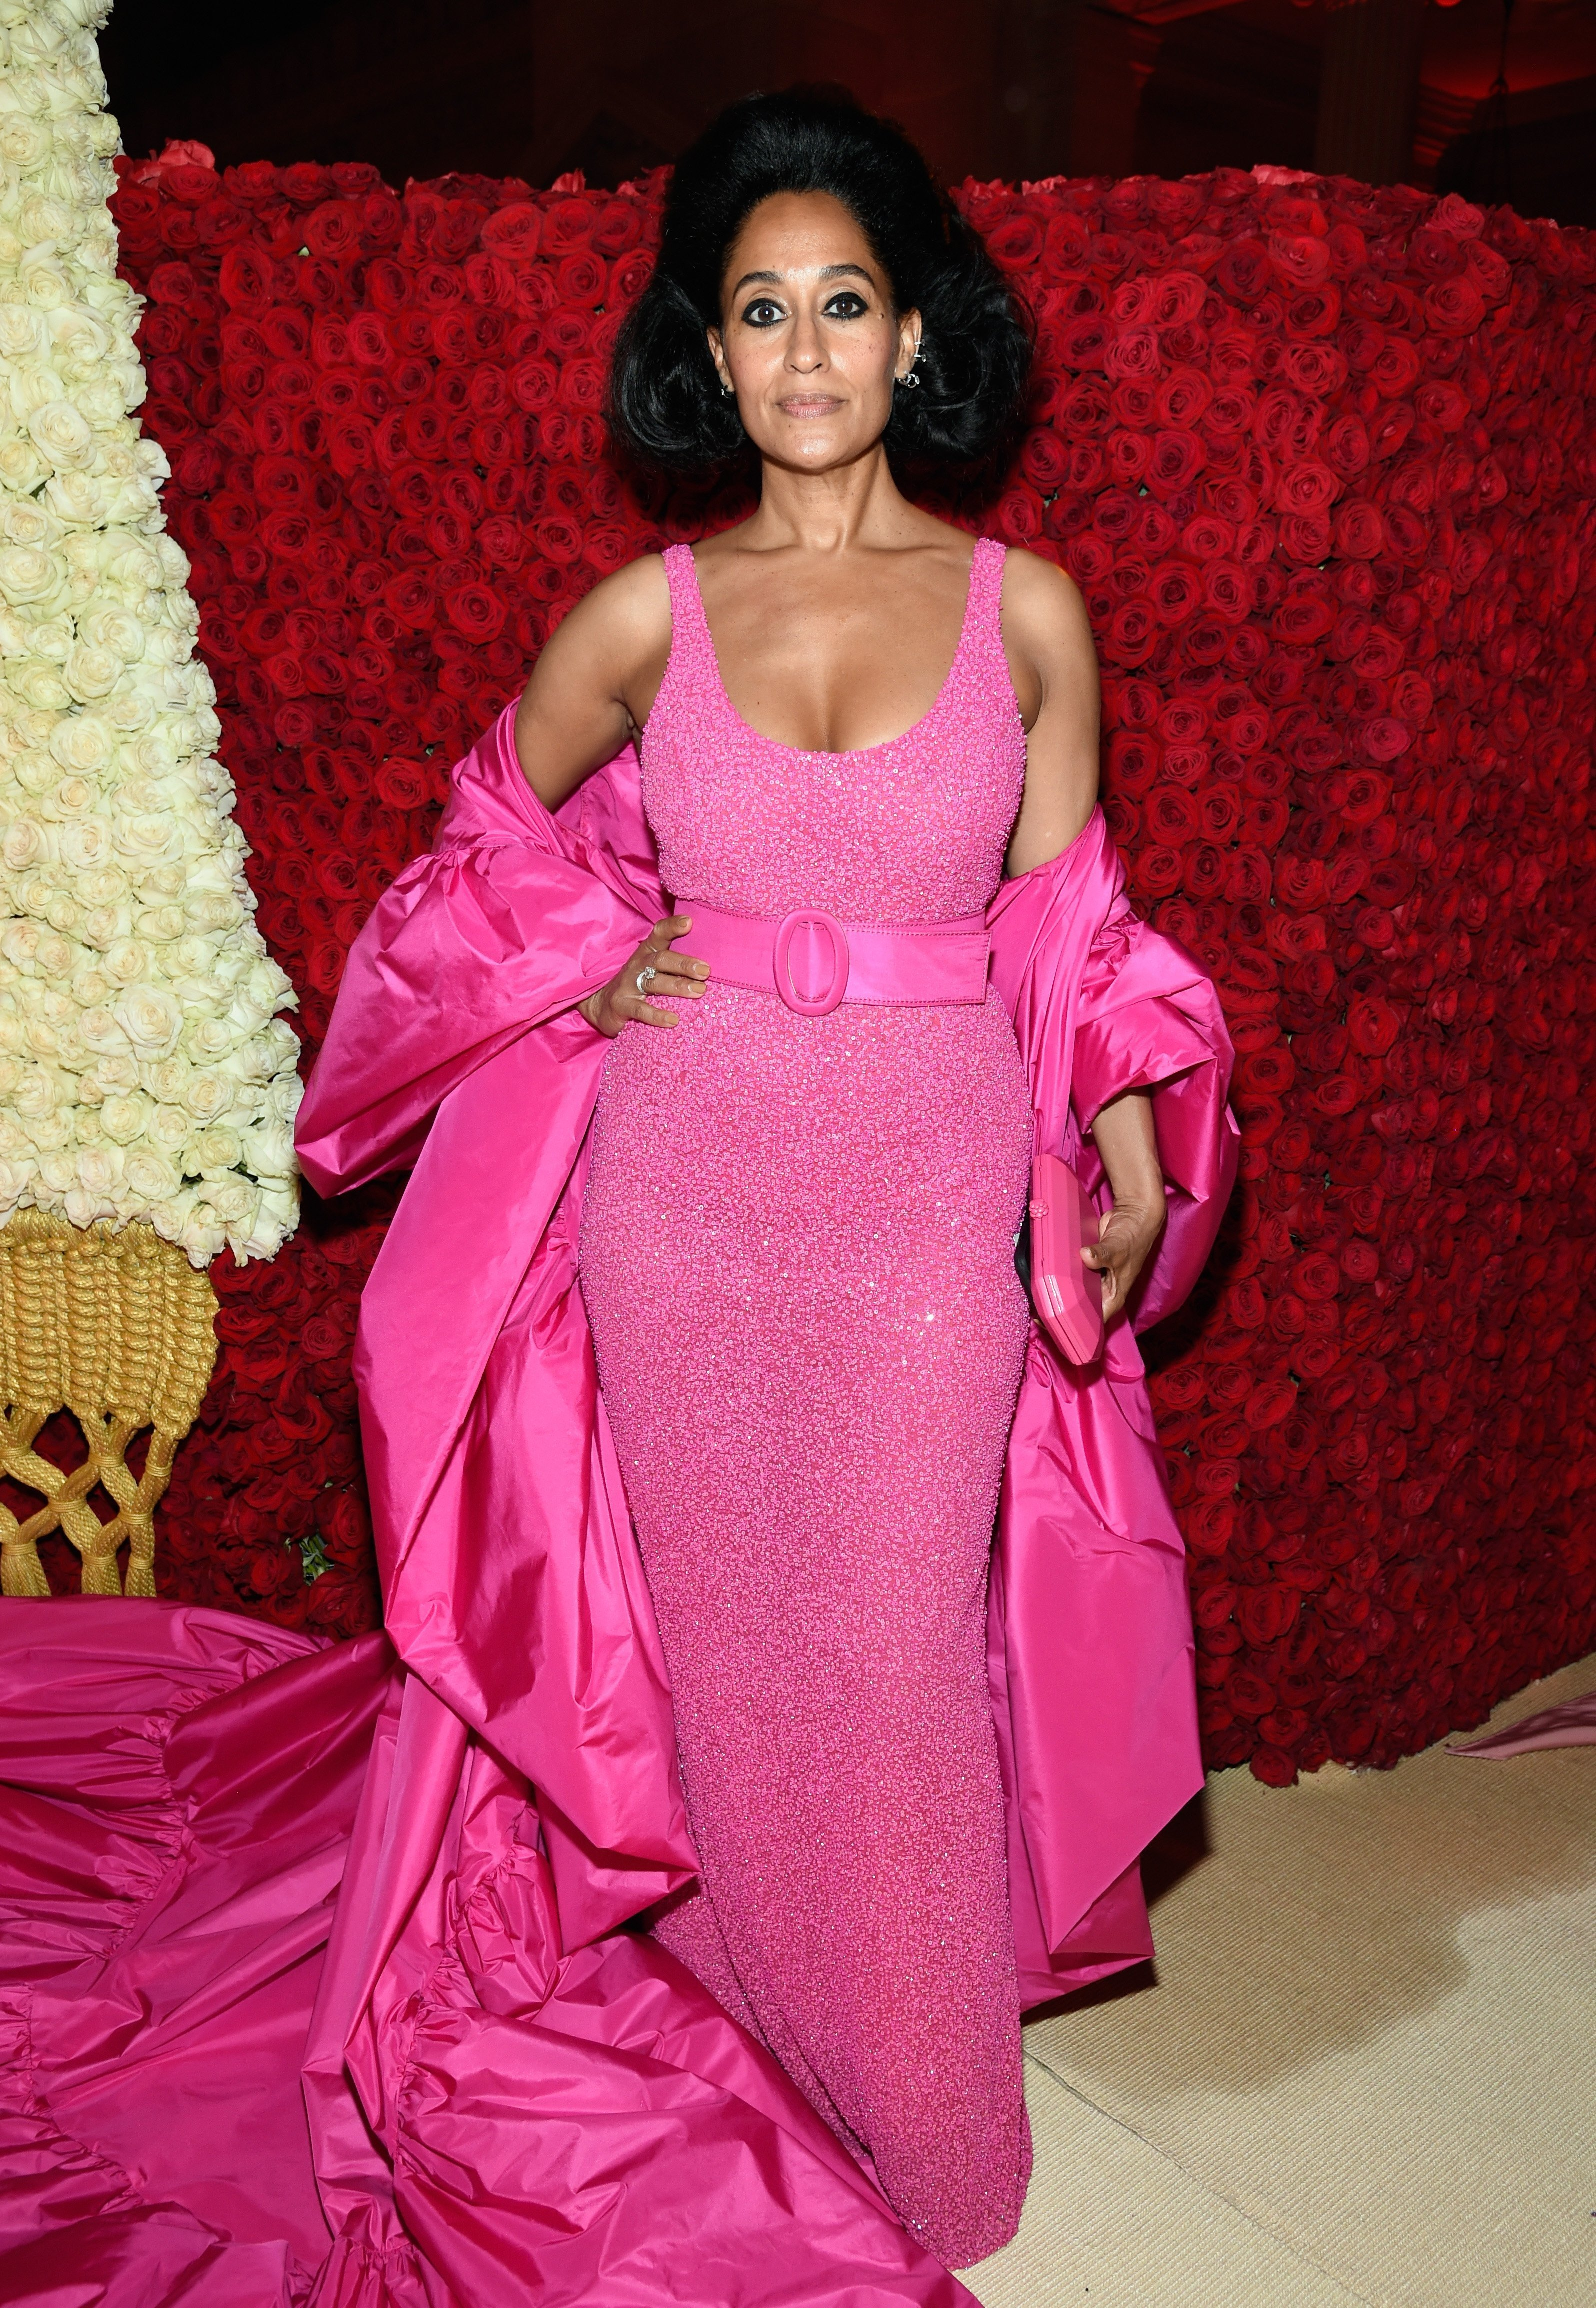 Tracee Ellis Ross attends the Met Gala in New York City on May 7, 2018 | Photo: Getty Images